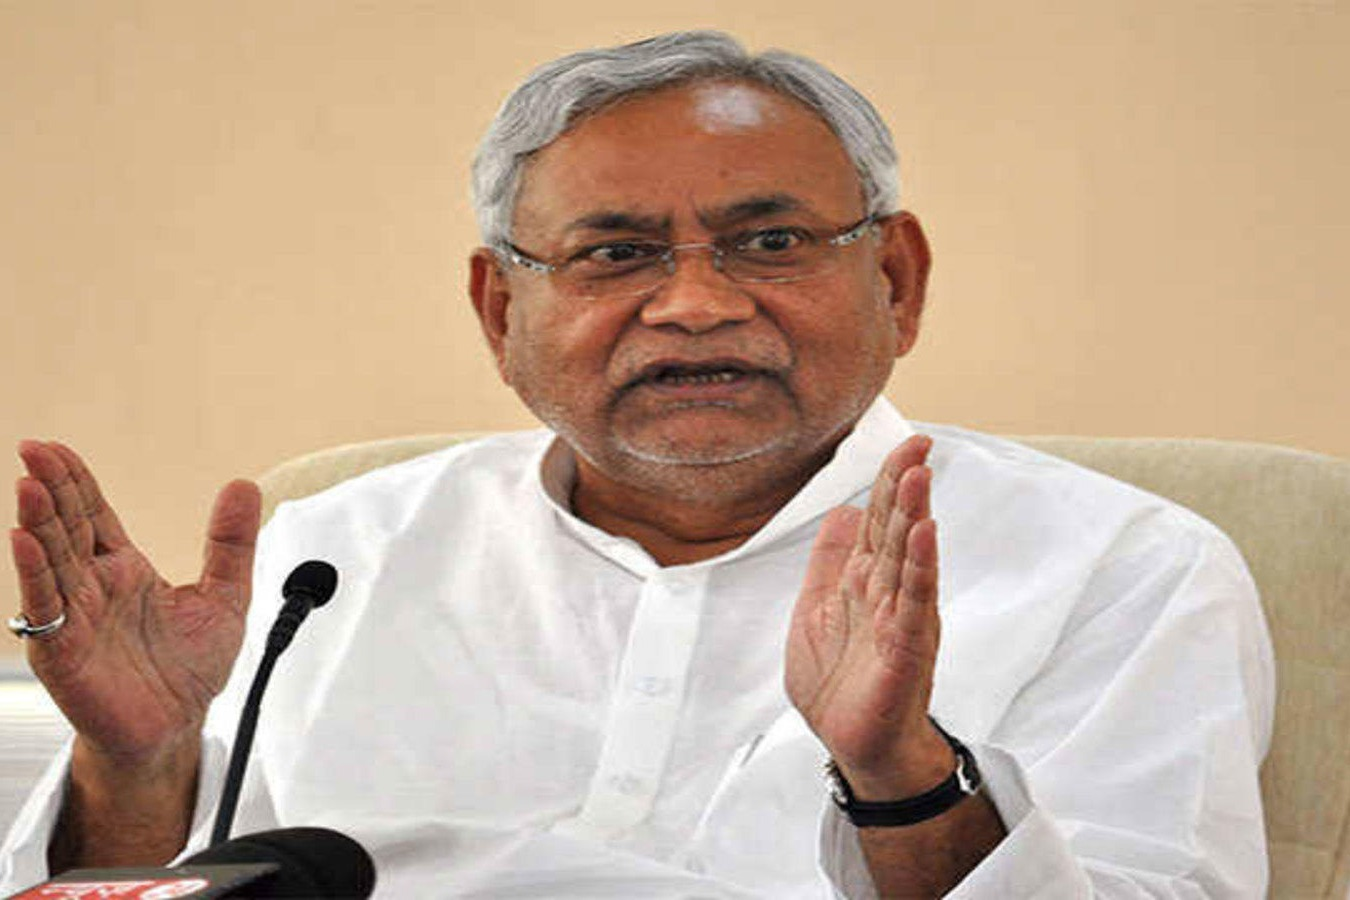 If Sushant Rajputs Father Wants we Can Recommend CBI Probe says Nitish Kumar